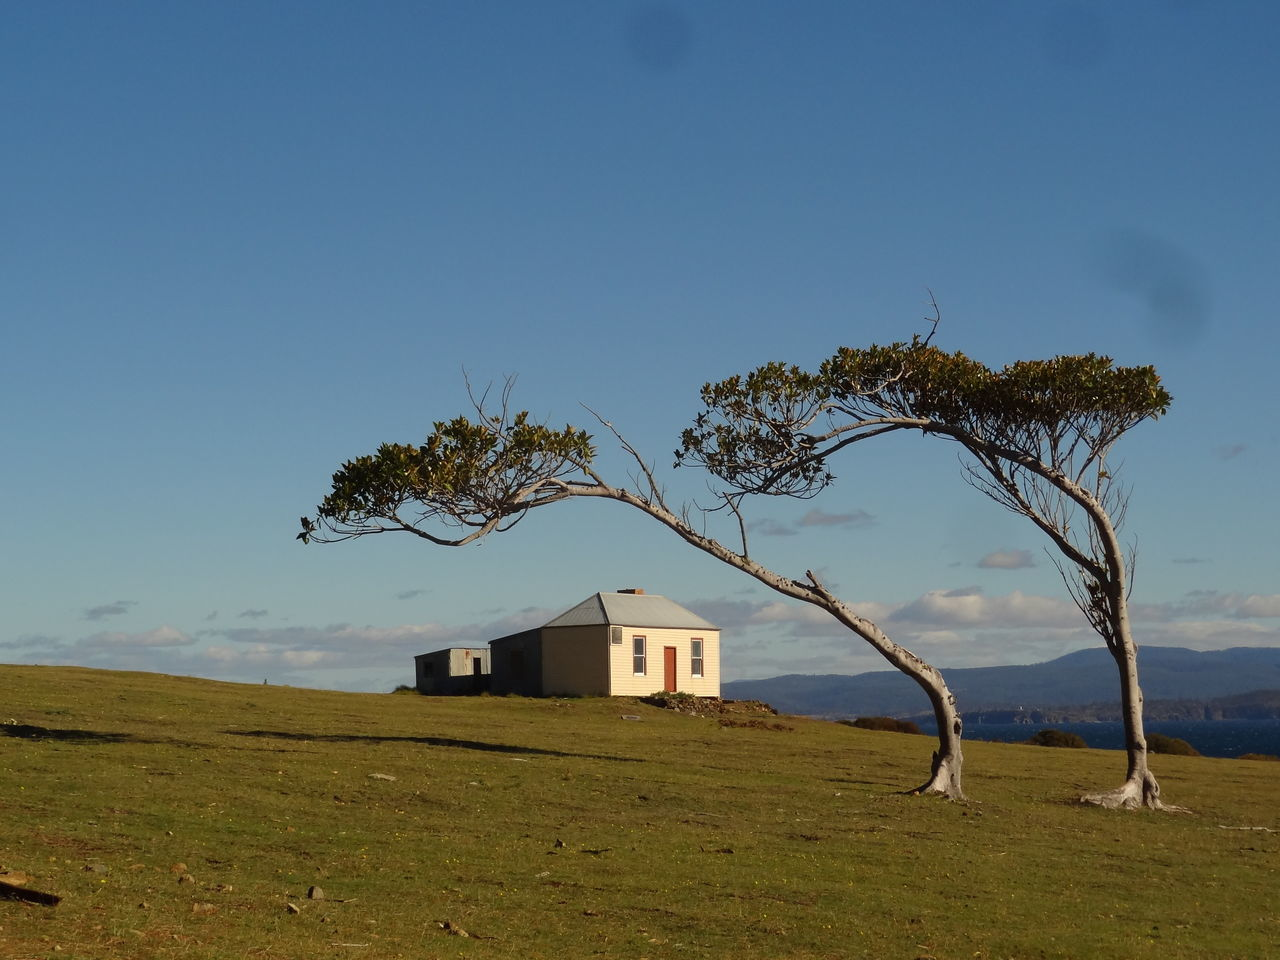 A lonely house on Maria Island, Tasmania. The wind caused the trees to bend over, causing a photogenic sight. Adventure Australia Beach Beauty In Nature Blue Clear Sky Colonial Architecture Day Grass Historical Building History Island Landscape Lonely Natural Nature Nature Photography No People Outdoors Sea Sky Solitude Tasmania Time Tree